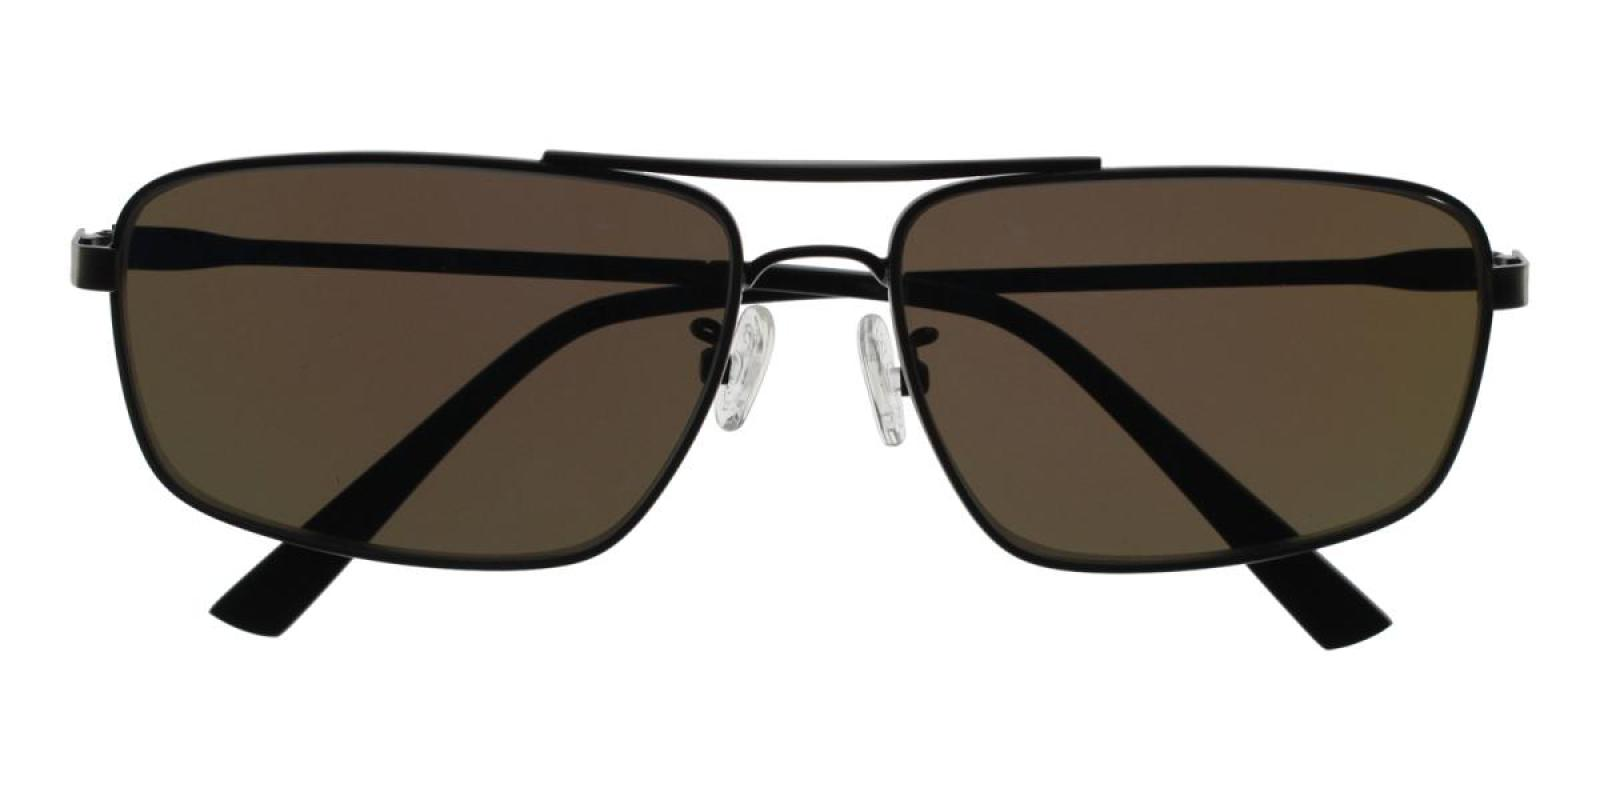 Santorini-Gun-Aviator-Metal-Sunglasses-detail